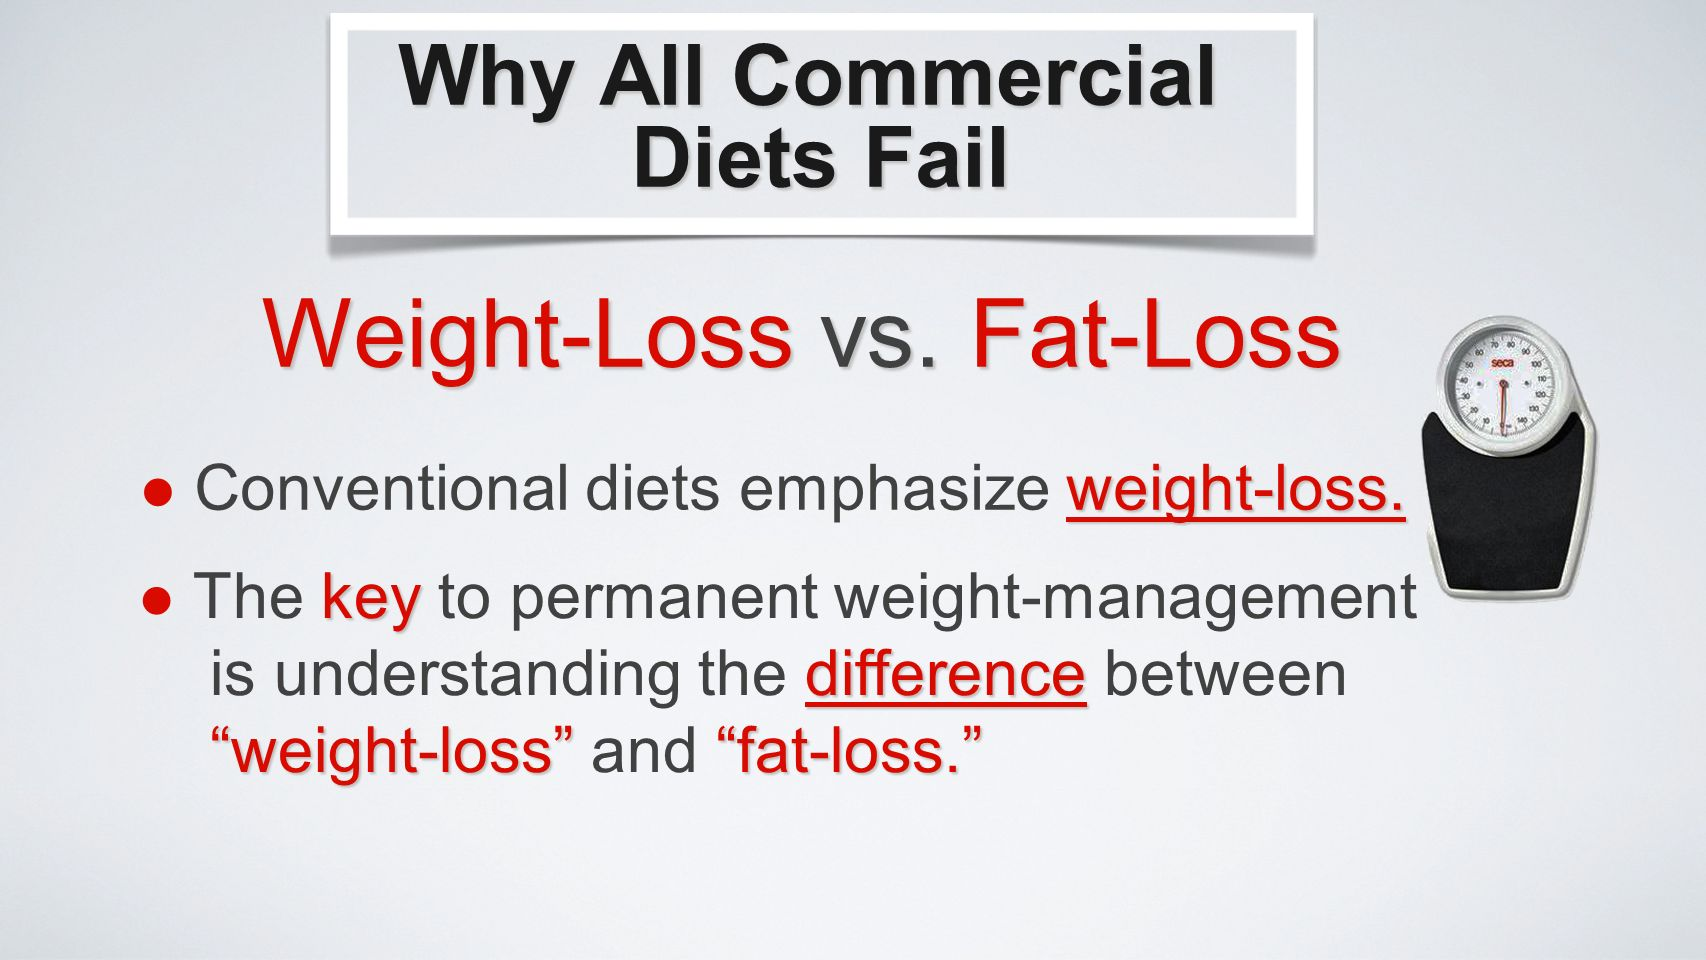 weight-loss. Conventional diets emphasize weight-loss.